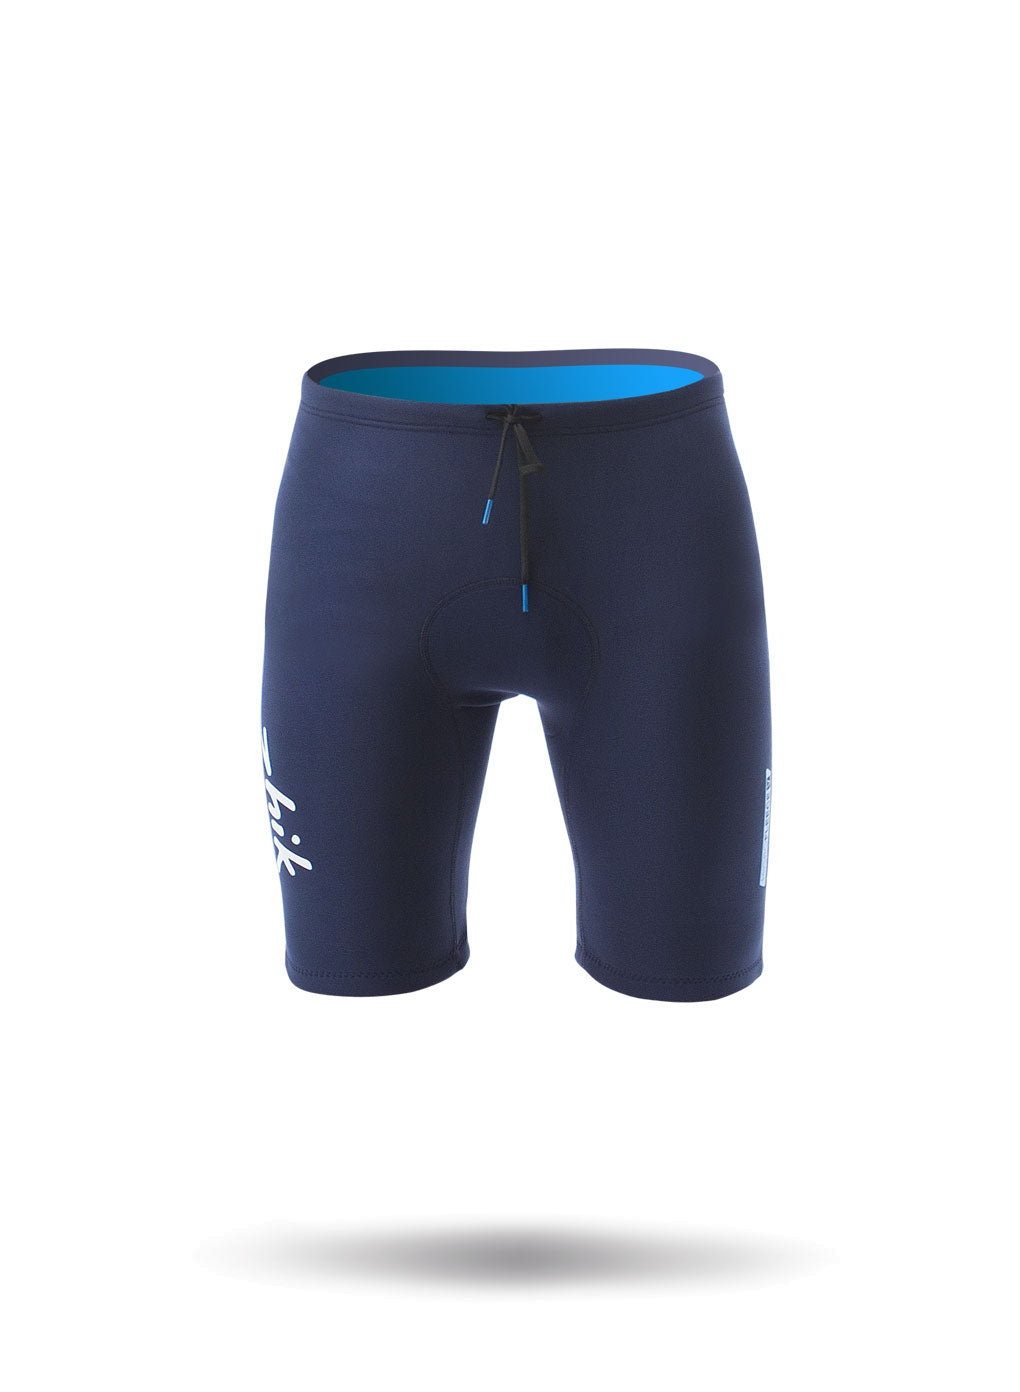 Zhik Microfleece V Shorts - Navy Blue